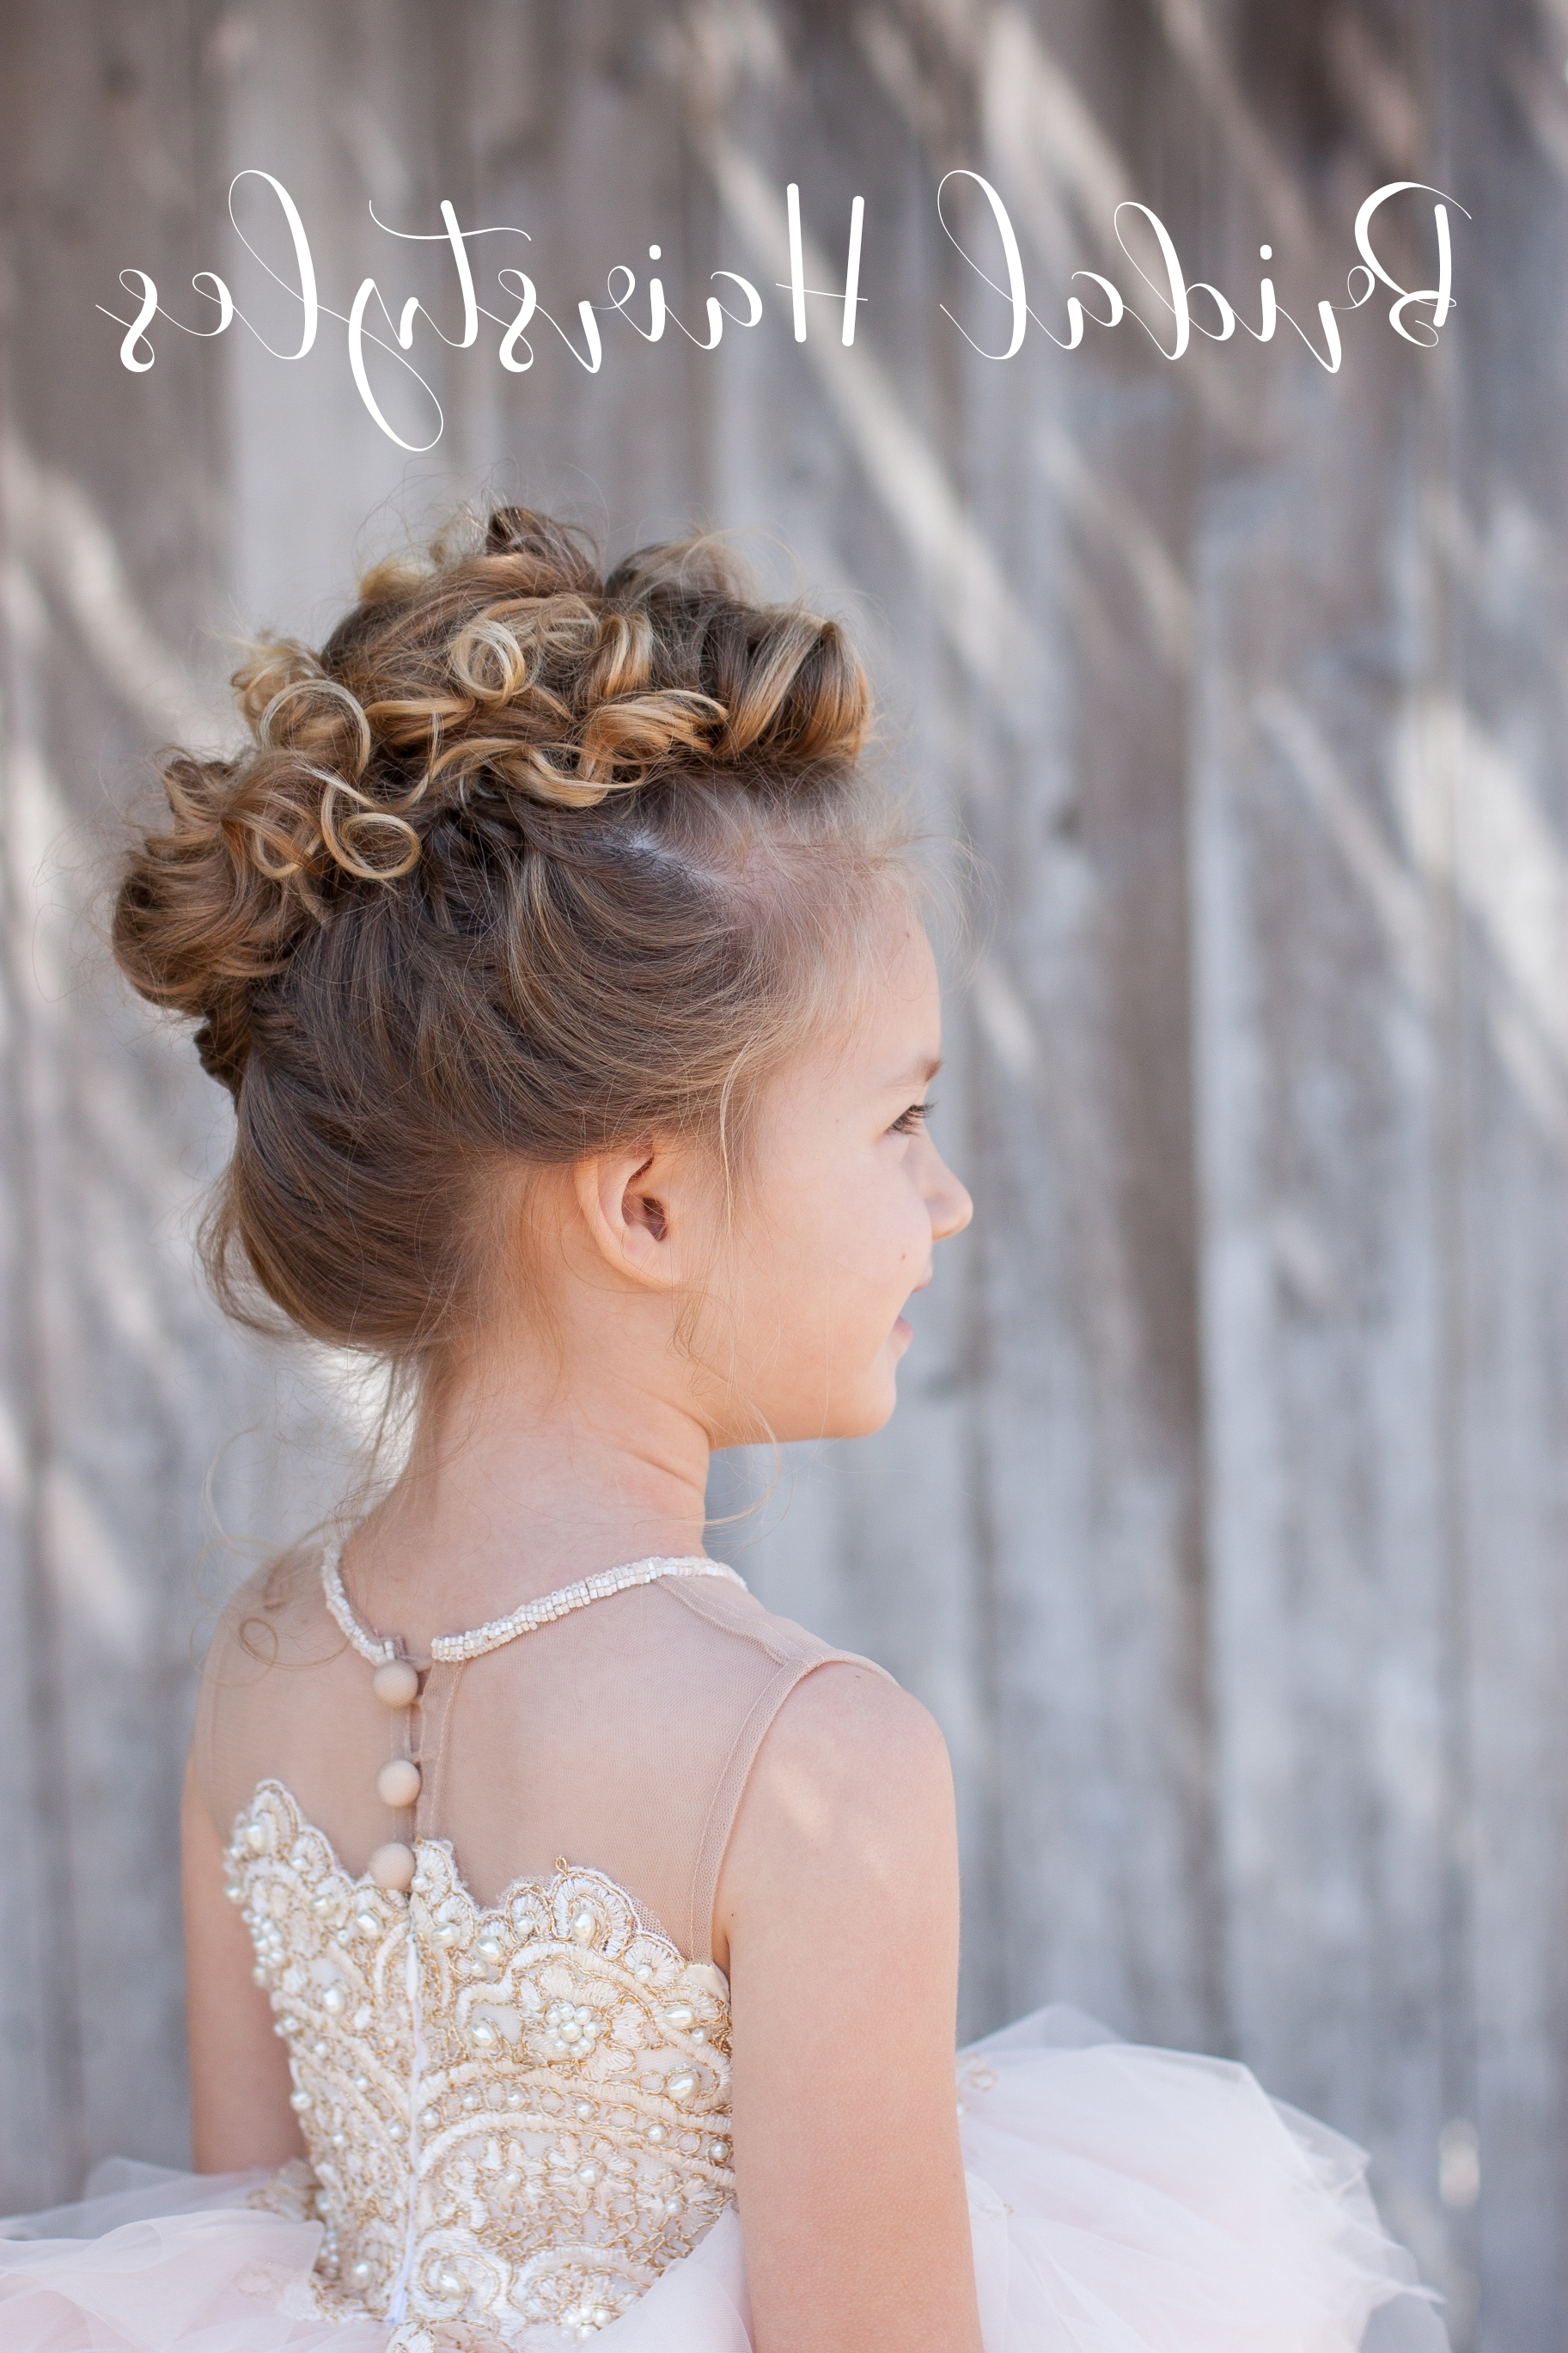 Current Wedding Hairstyles For Girls Pertaining To 5 Bridal Hairstyles (View 3 of 15)